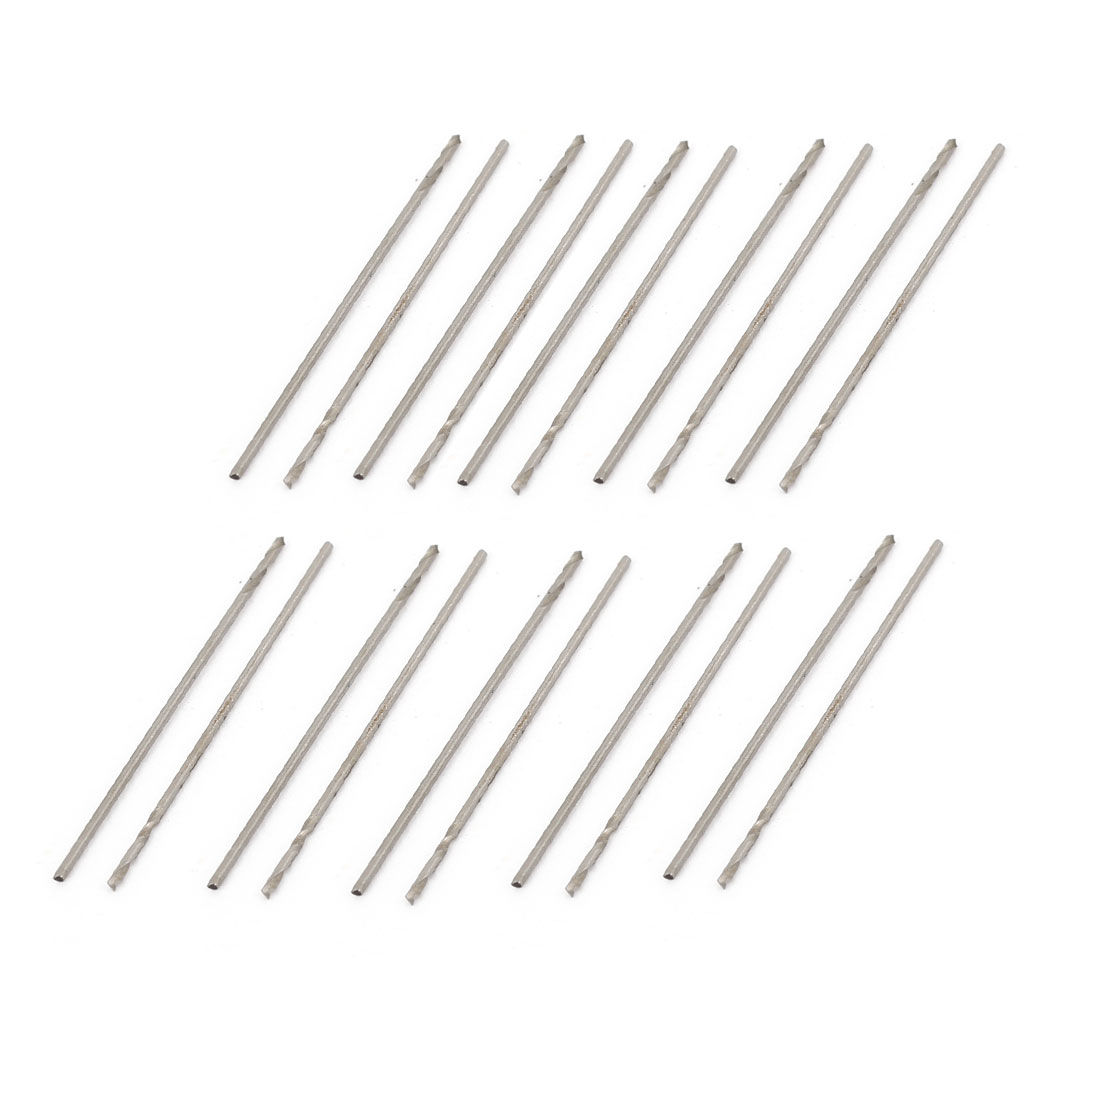 High Speed Steel 0.5mm Dia Split Point 22mm Long Twist Drill Bits 20 Pcs